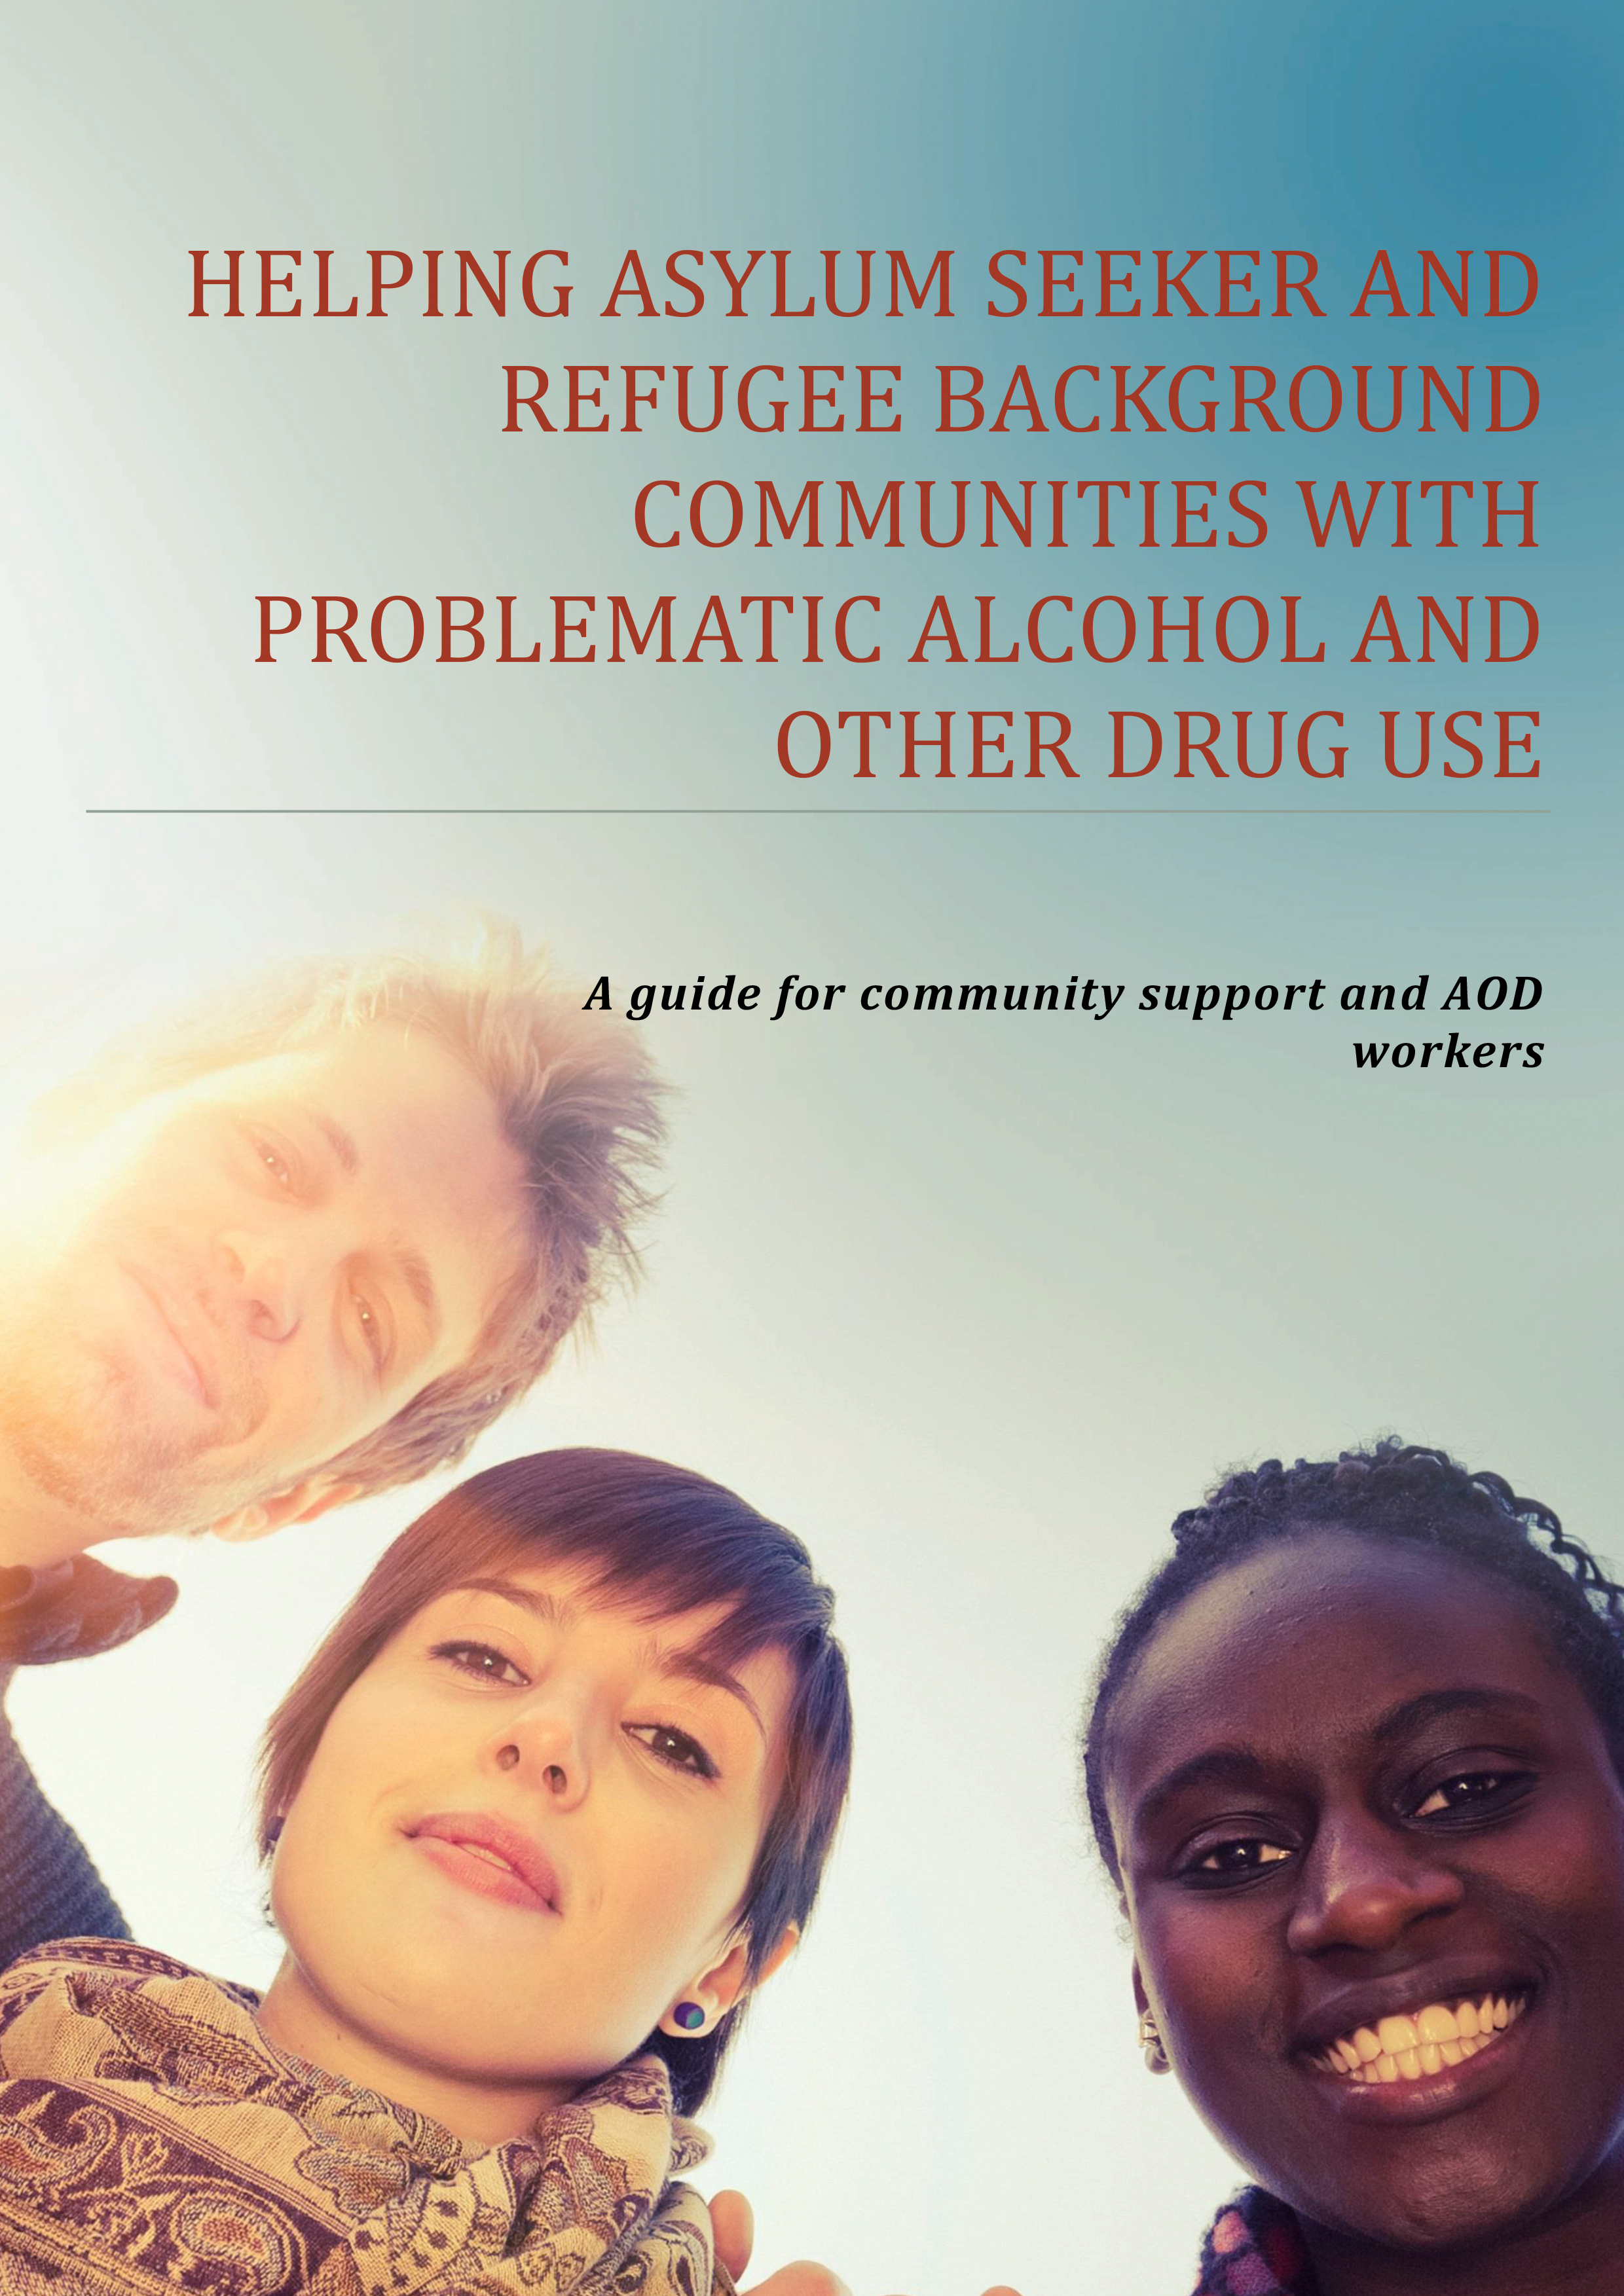 Helping Asylum Seeker and Refugee Background People with Problematic Alcohol and Other Drug Use - QNADA (2015)